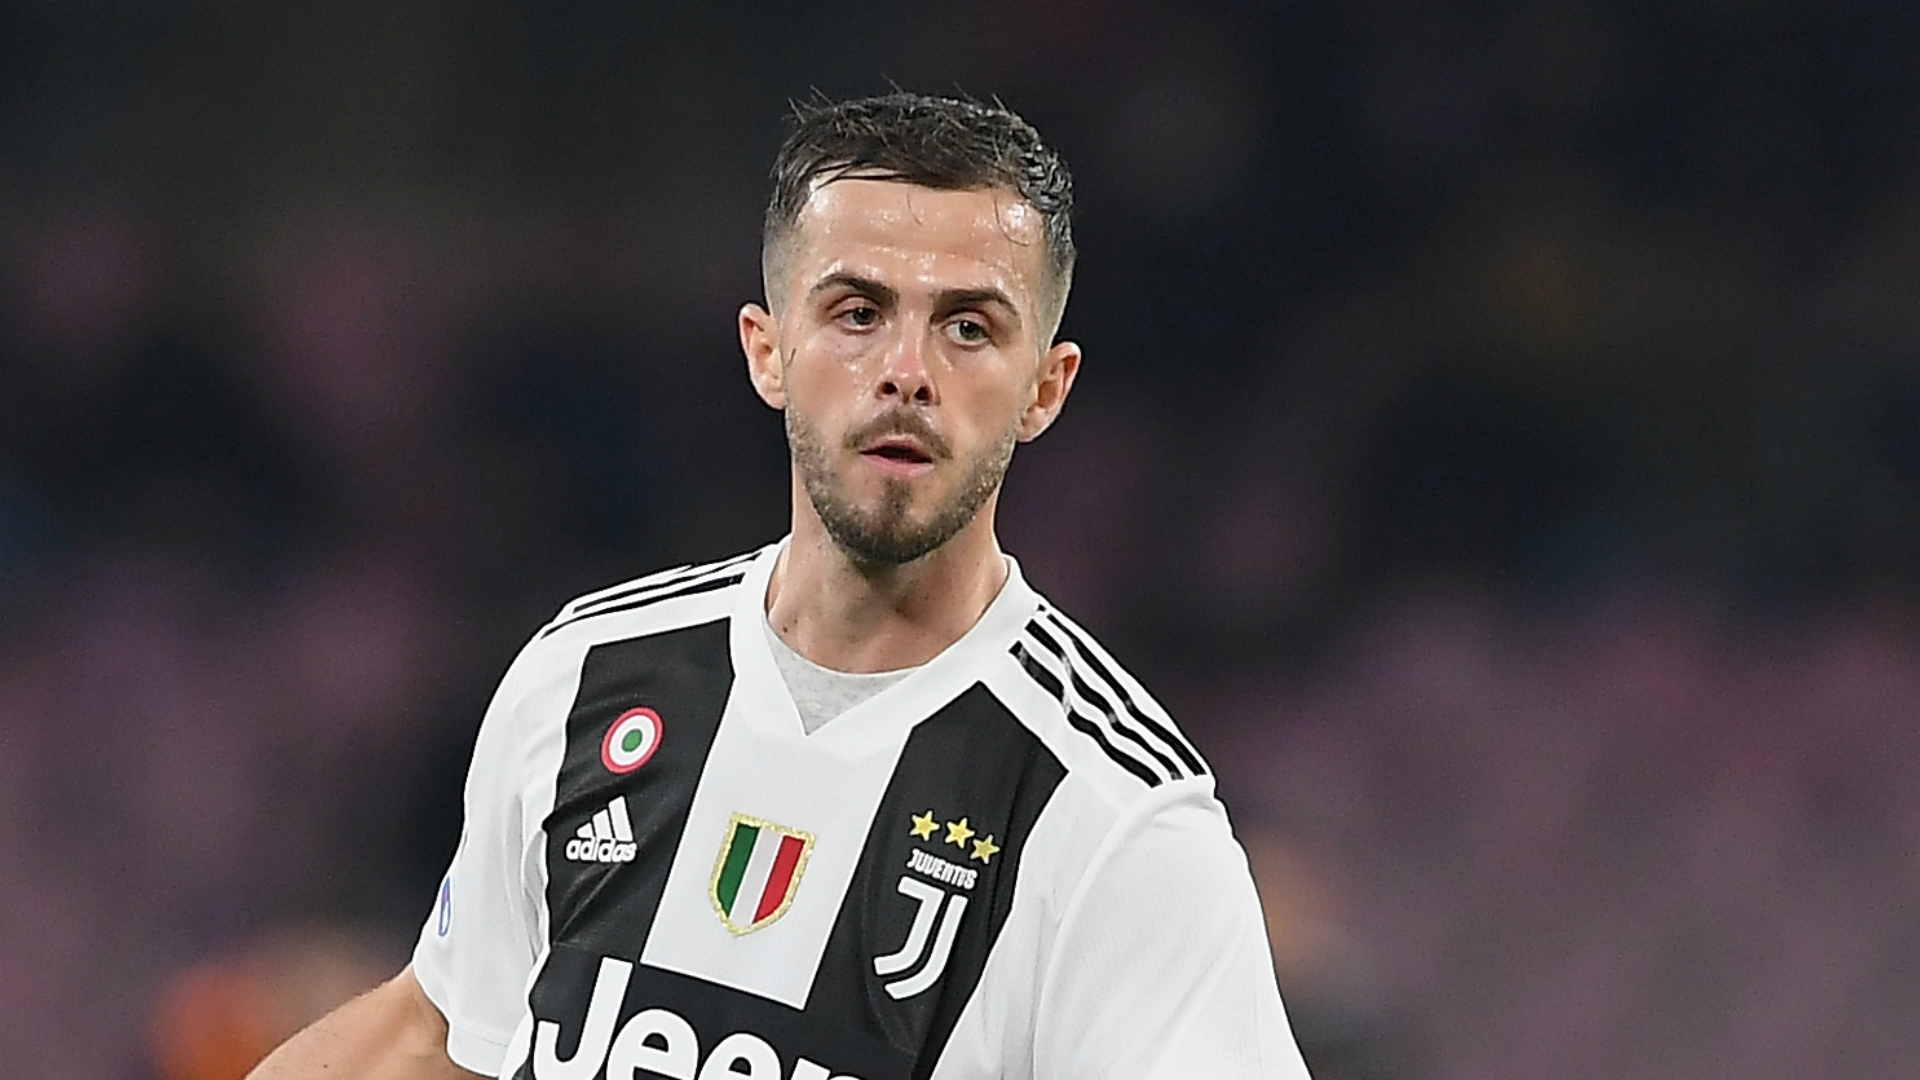 Paris Saint-Germain, Real Madrid and Manchester City are all reportedly interested in Miralem Pjanic, but he wants to stay at Juventus.